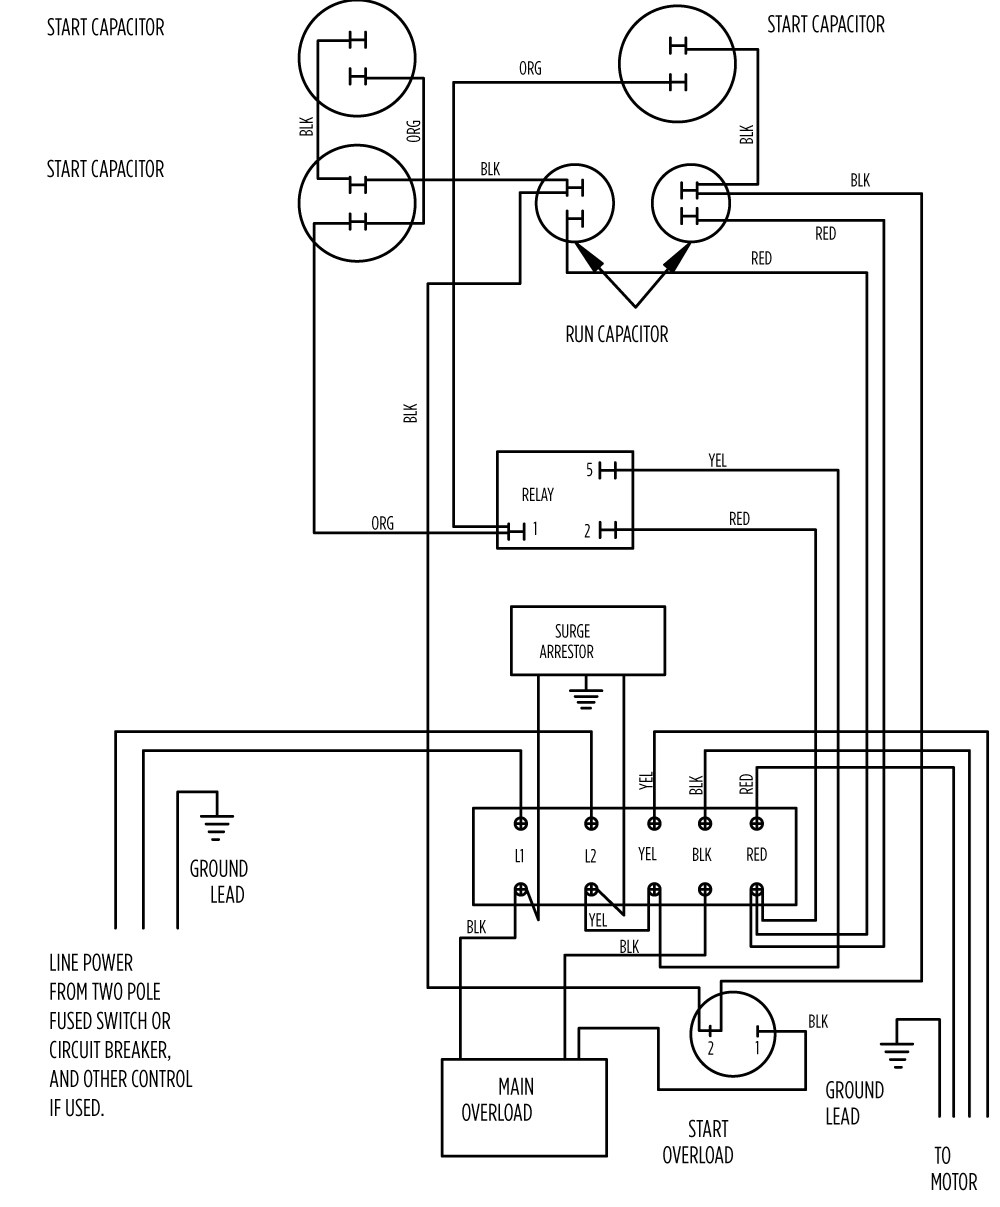 10 hp standard 282 202 9210 or 282 202 9230_aim gallery?format=jpg&quality=80 aim manual page 57 single phase motors and controls motor electric motor wiring diagrams at reclaimingppi.co